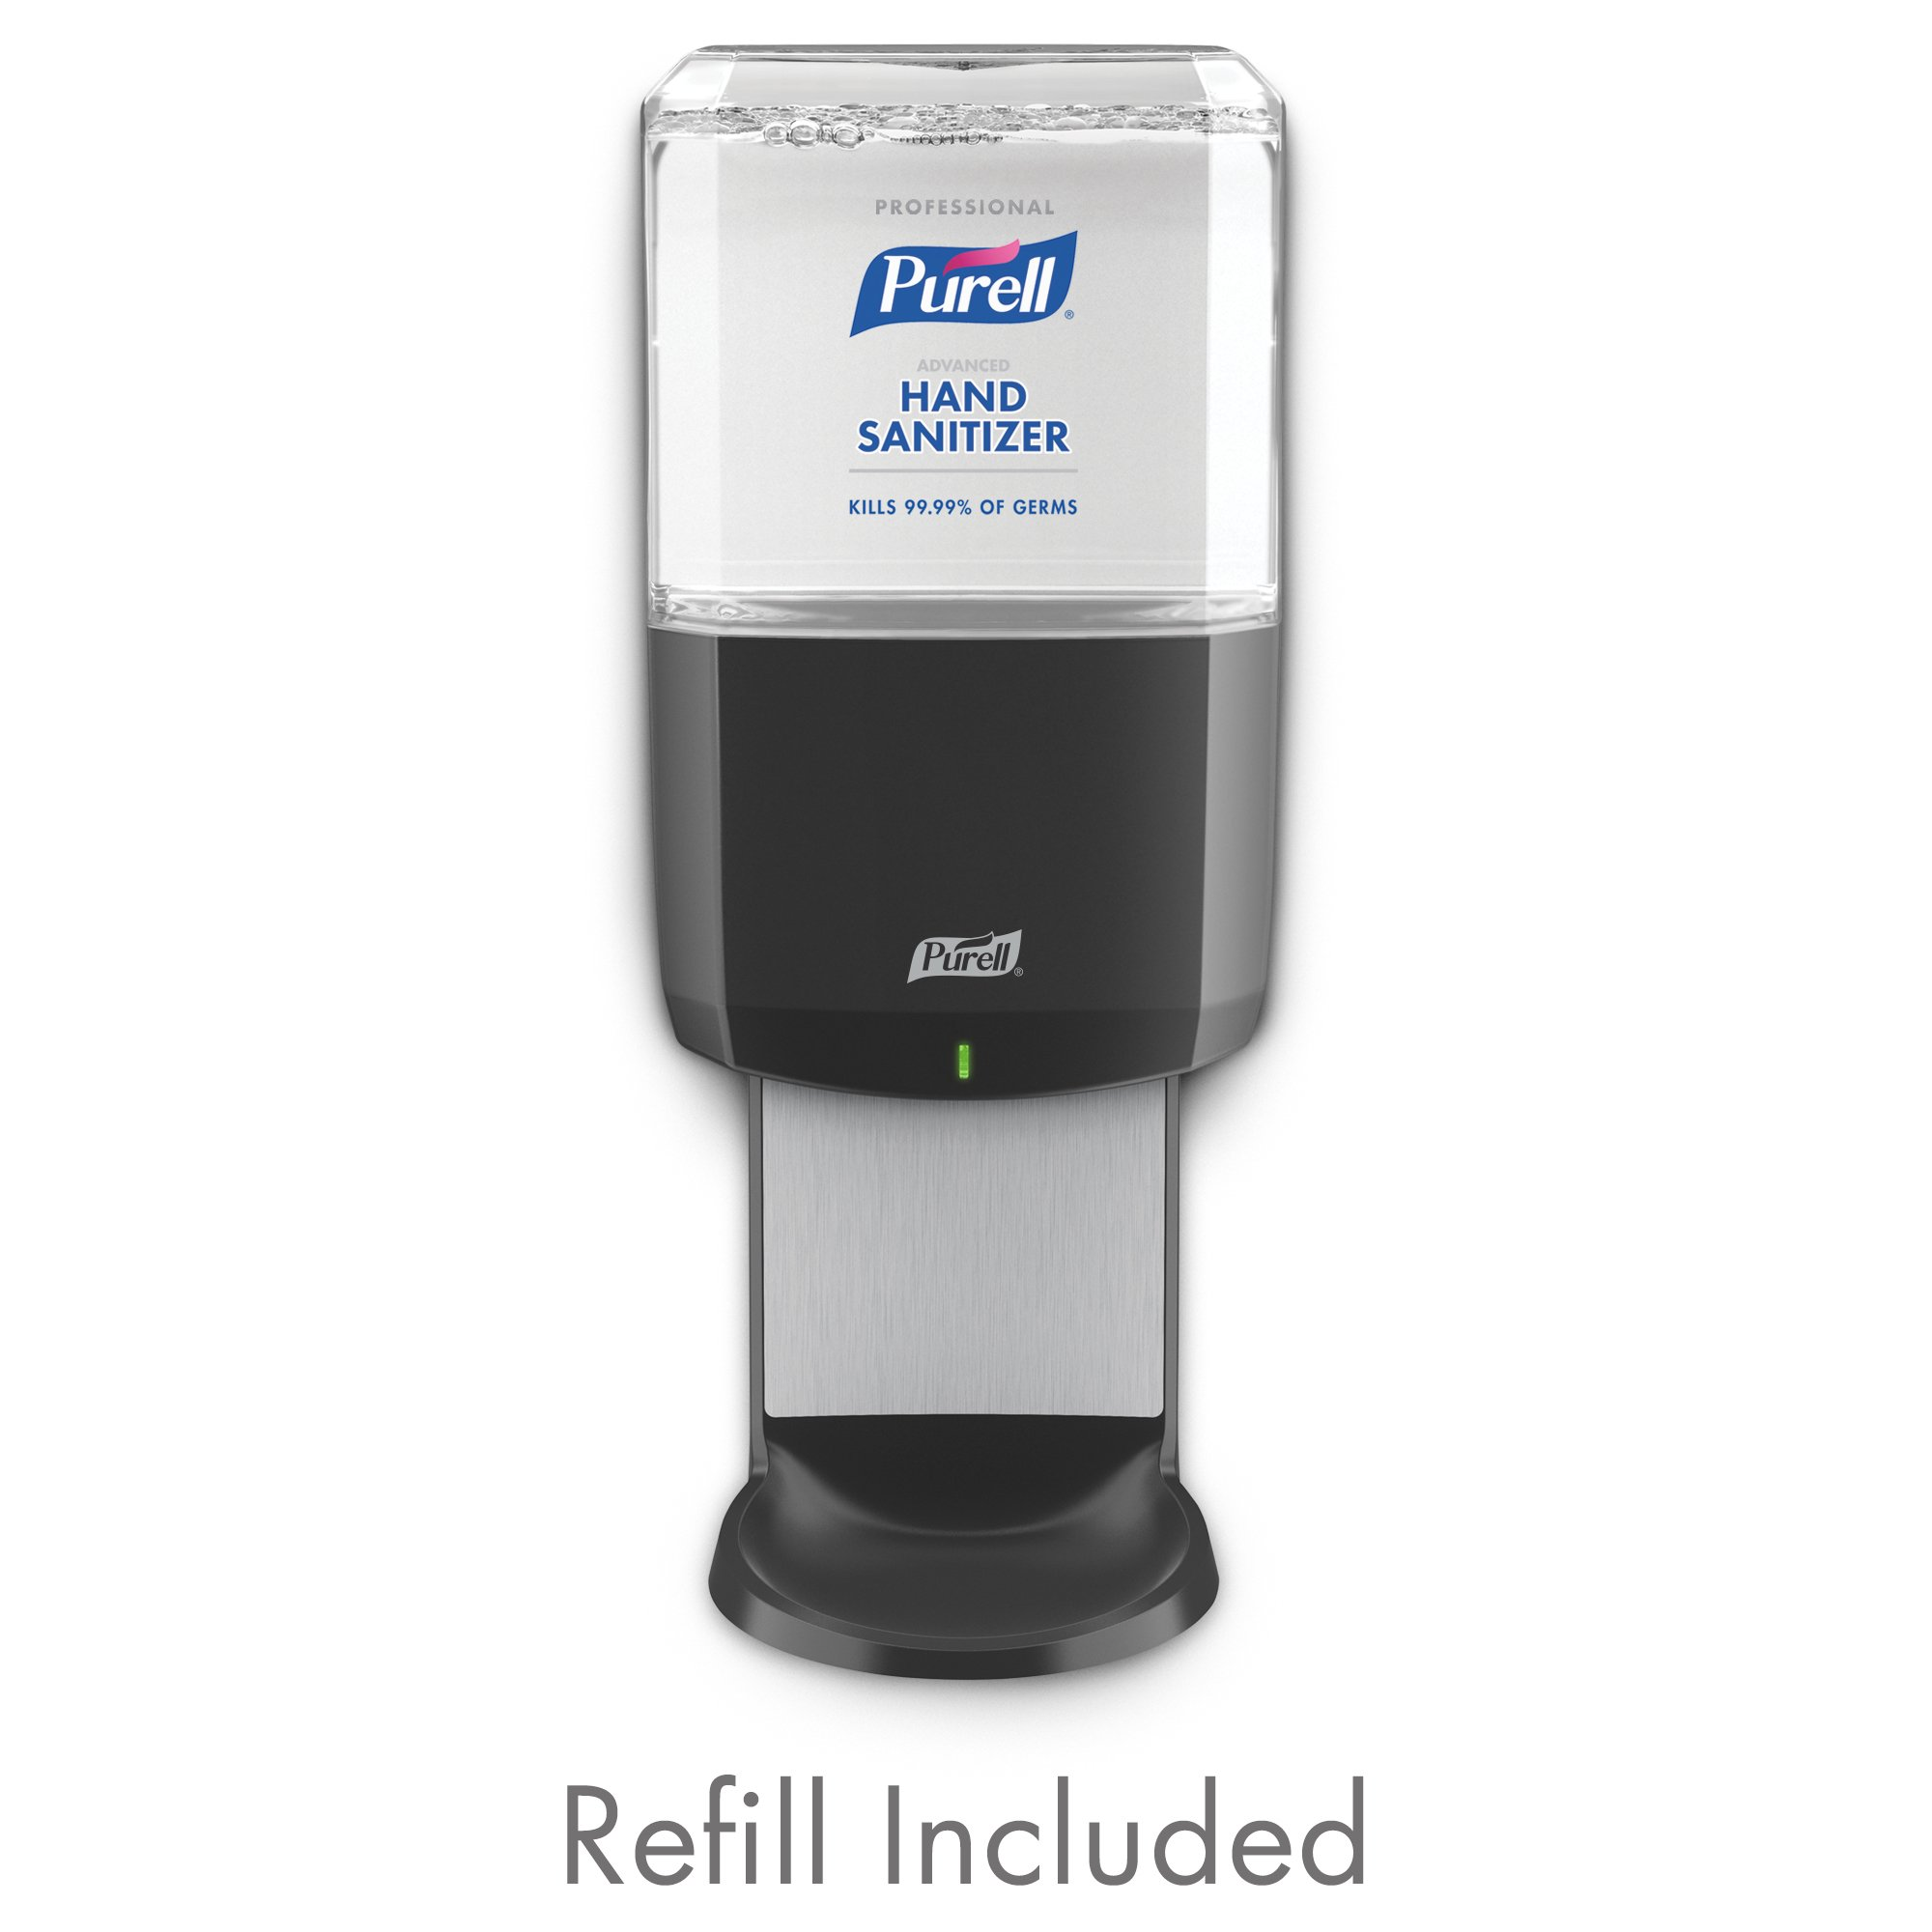 PURELL Professional Advanced Hand Sanitizer ES6 Starter Kit, 1- 1200 mL Hand Sanitizer Foam Refill + 1- PURELL ES6 Graphite Touch-Free Dispenser (Pack of 1) - 6454-1G by Purell